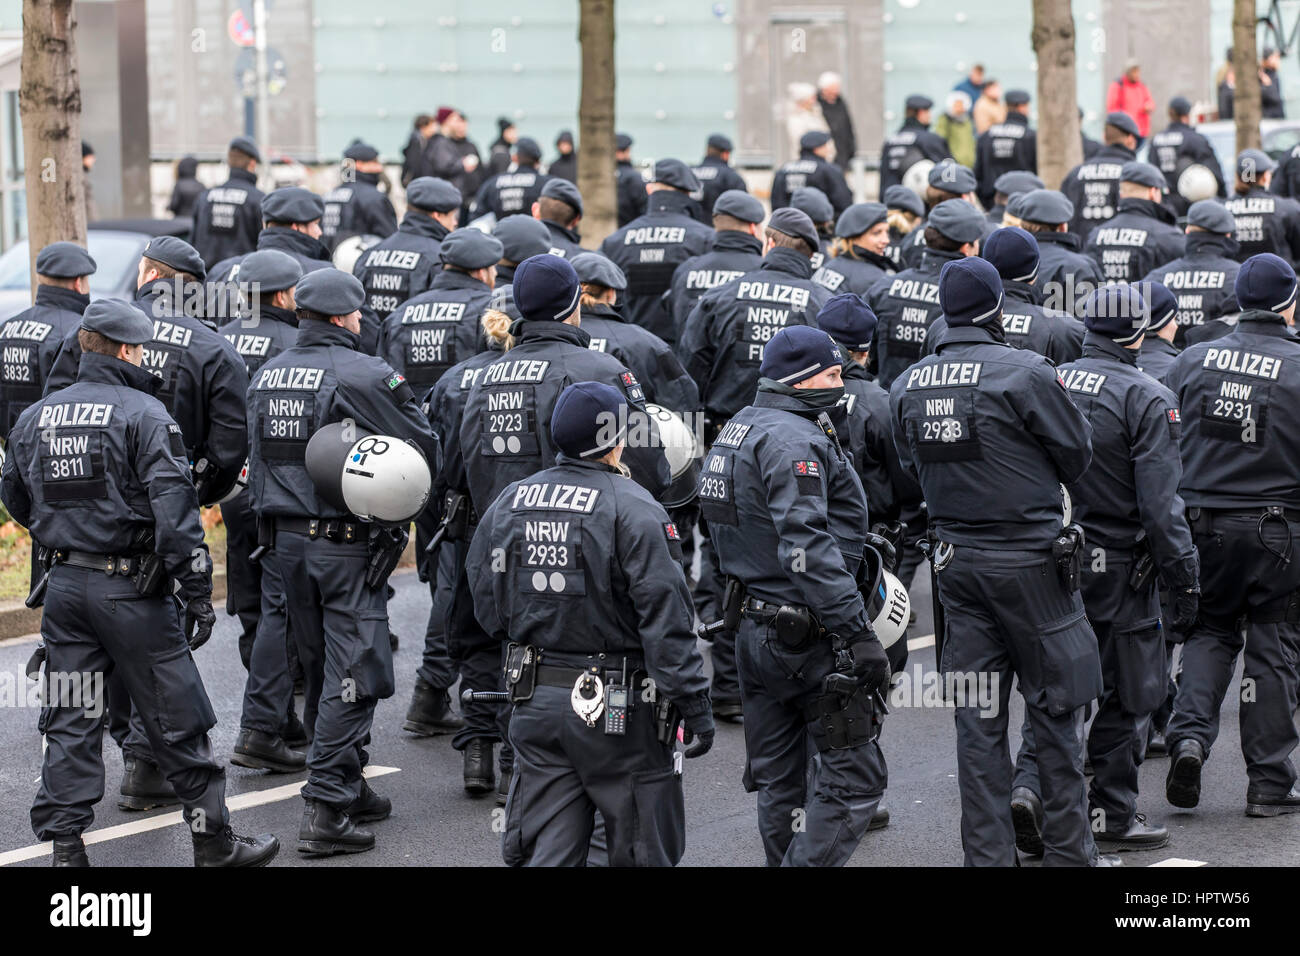 German riot police unit during a demonstration in Dortmund, Germany, - Stock Image